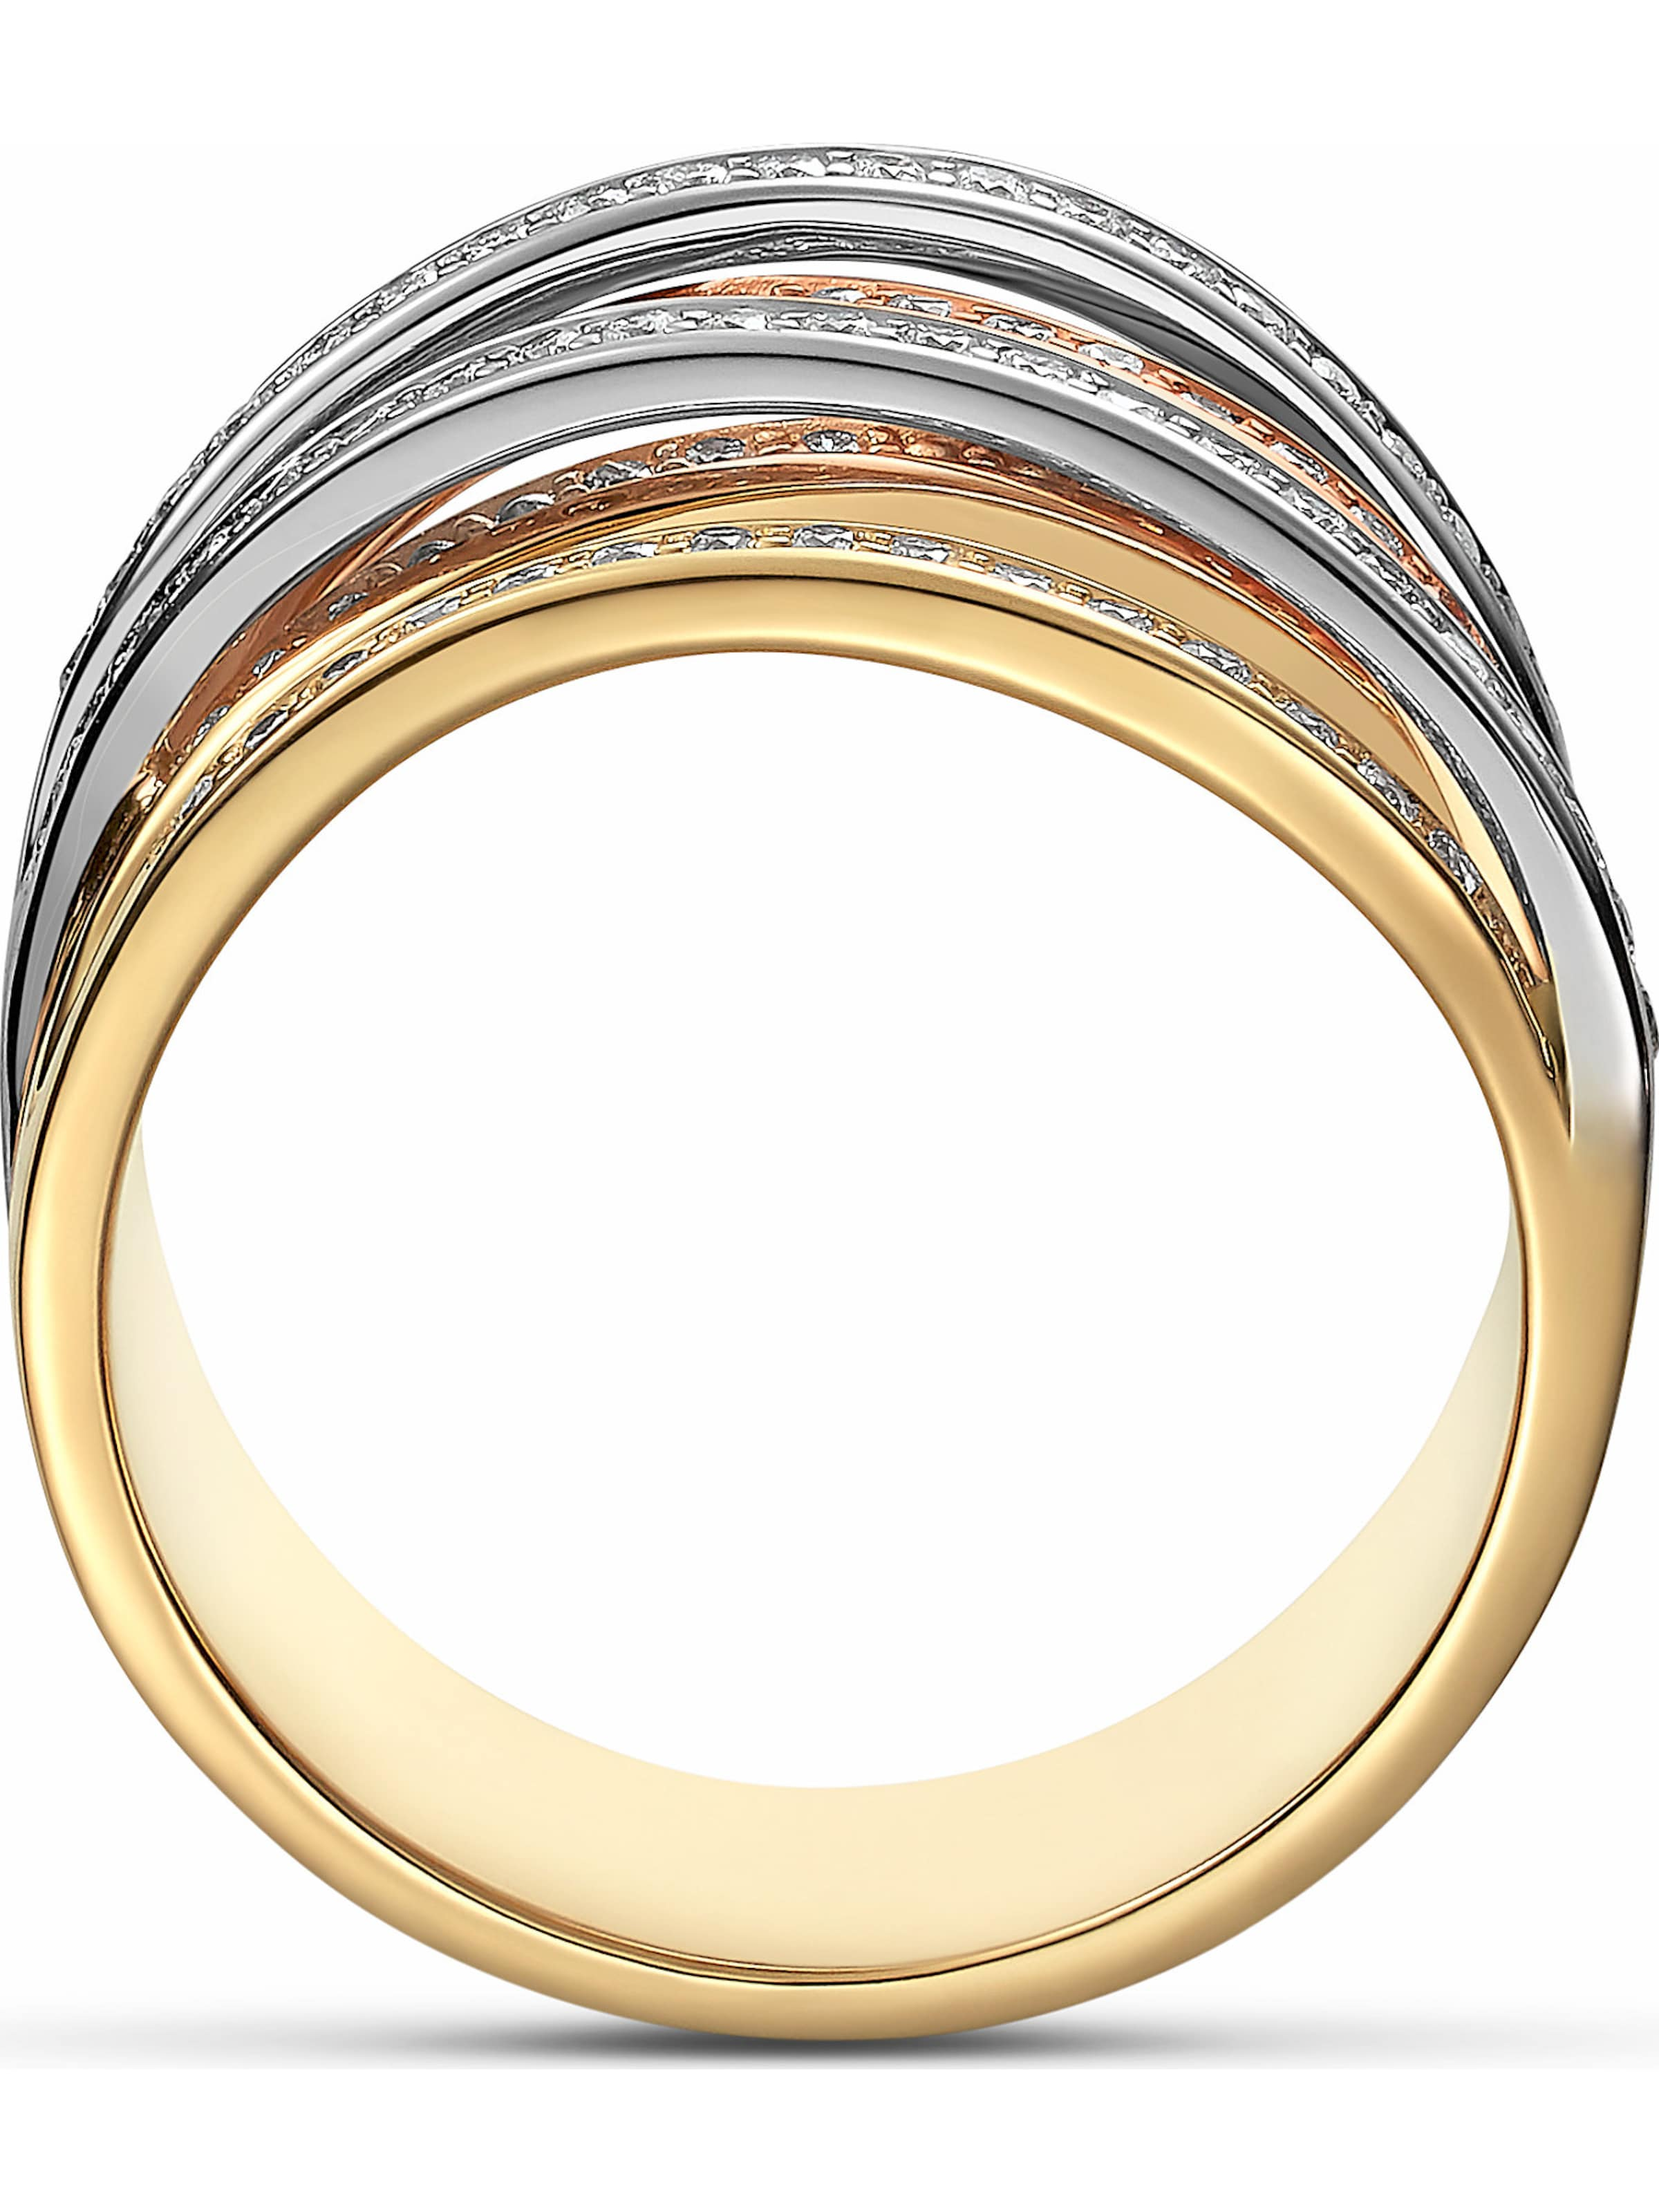 Christ Silber Christ In GoldRosegold Ring Silber GoldRosegold Ring In 0wOXknP8